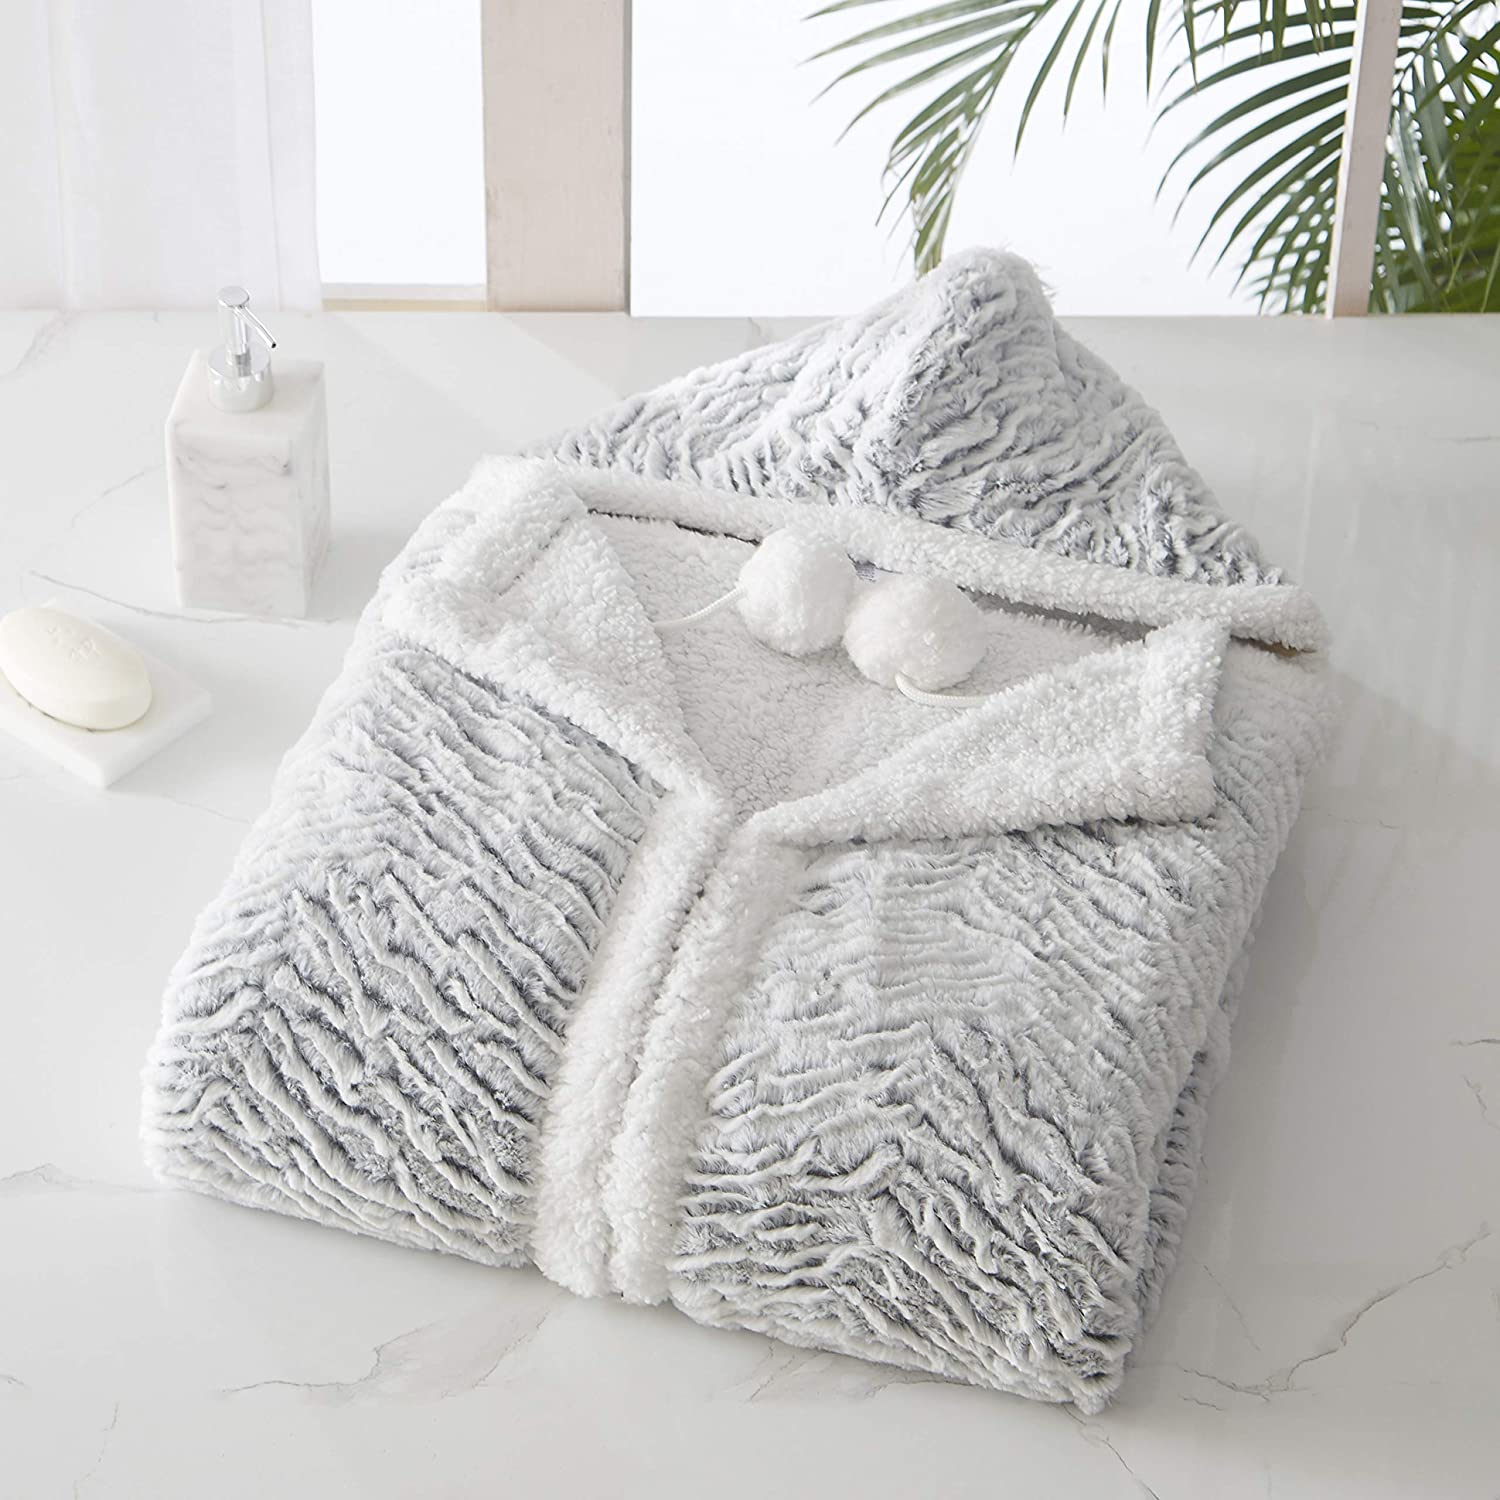 """Chic Home Dohwa Snuggle Hoodie Animal Pattern Robe Cozy Super Soft Ultra Plush Micromink Coral Fleece Sherpa Lined Wearable Blanket with 2 Pockets Hood Drawstring Closure, 51"""" x 71"""""""